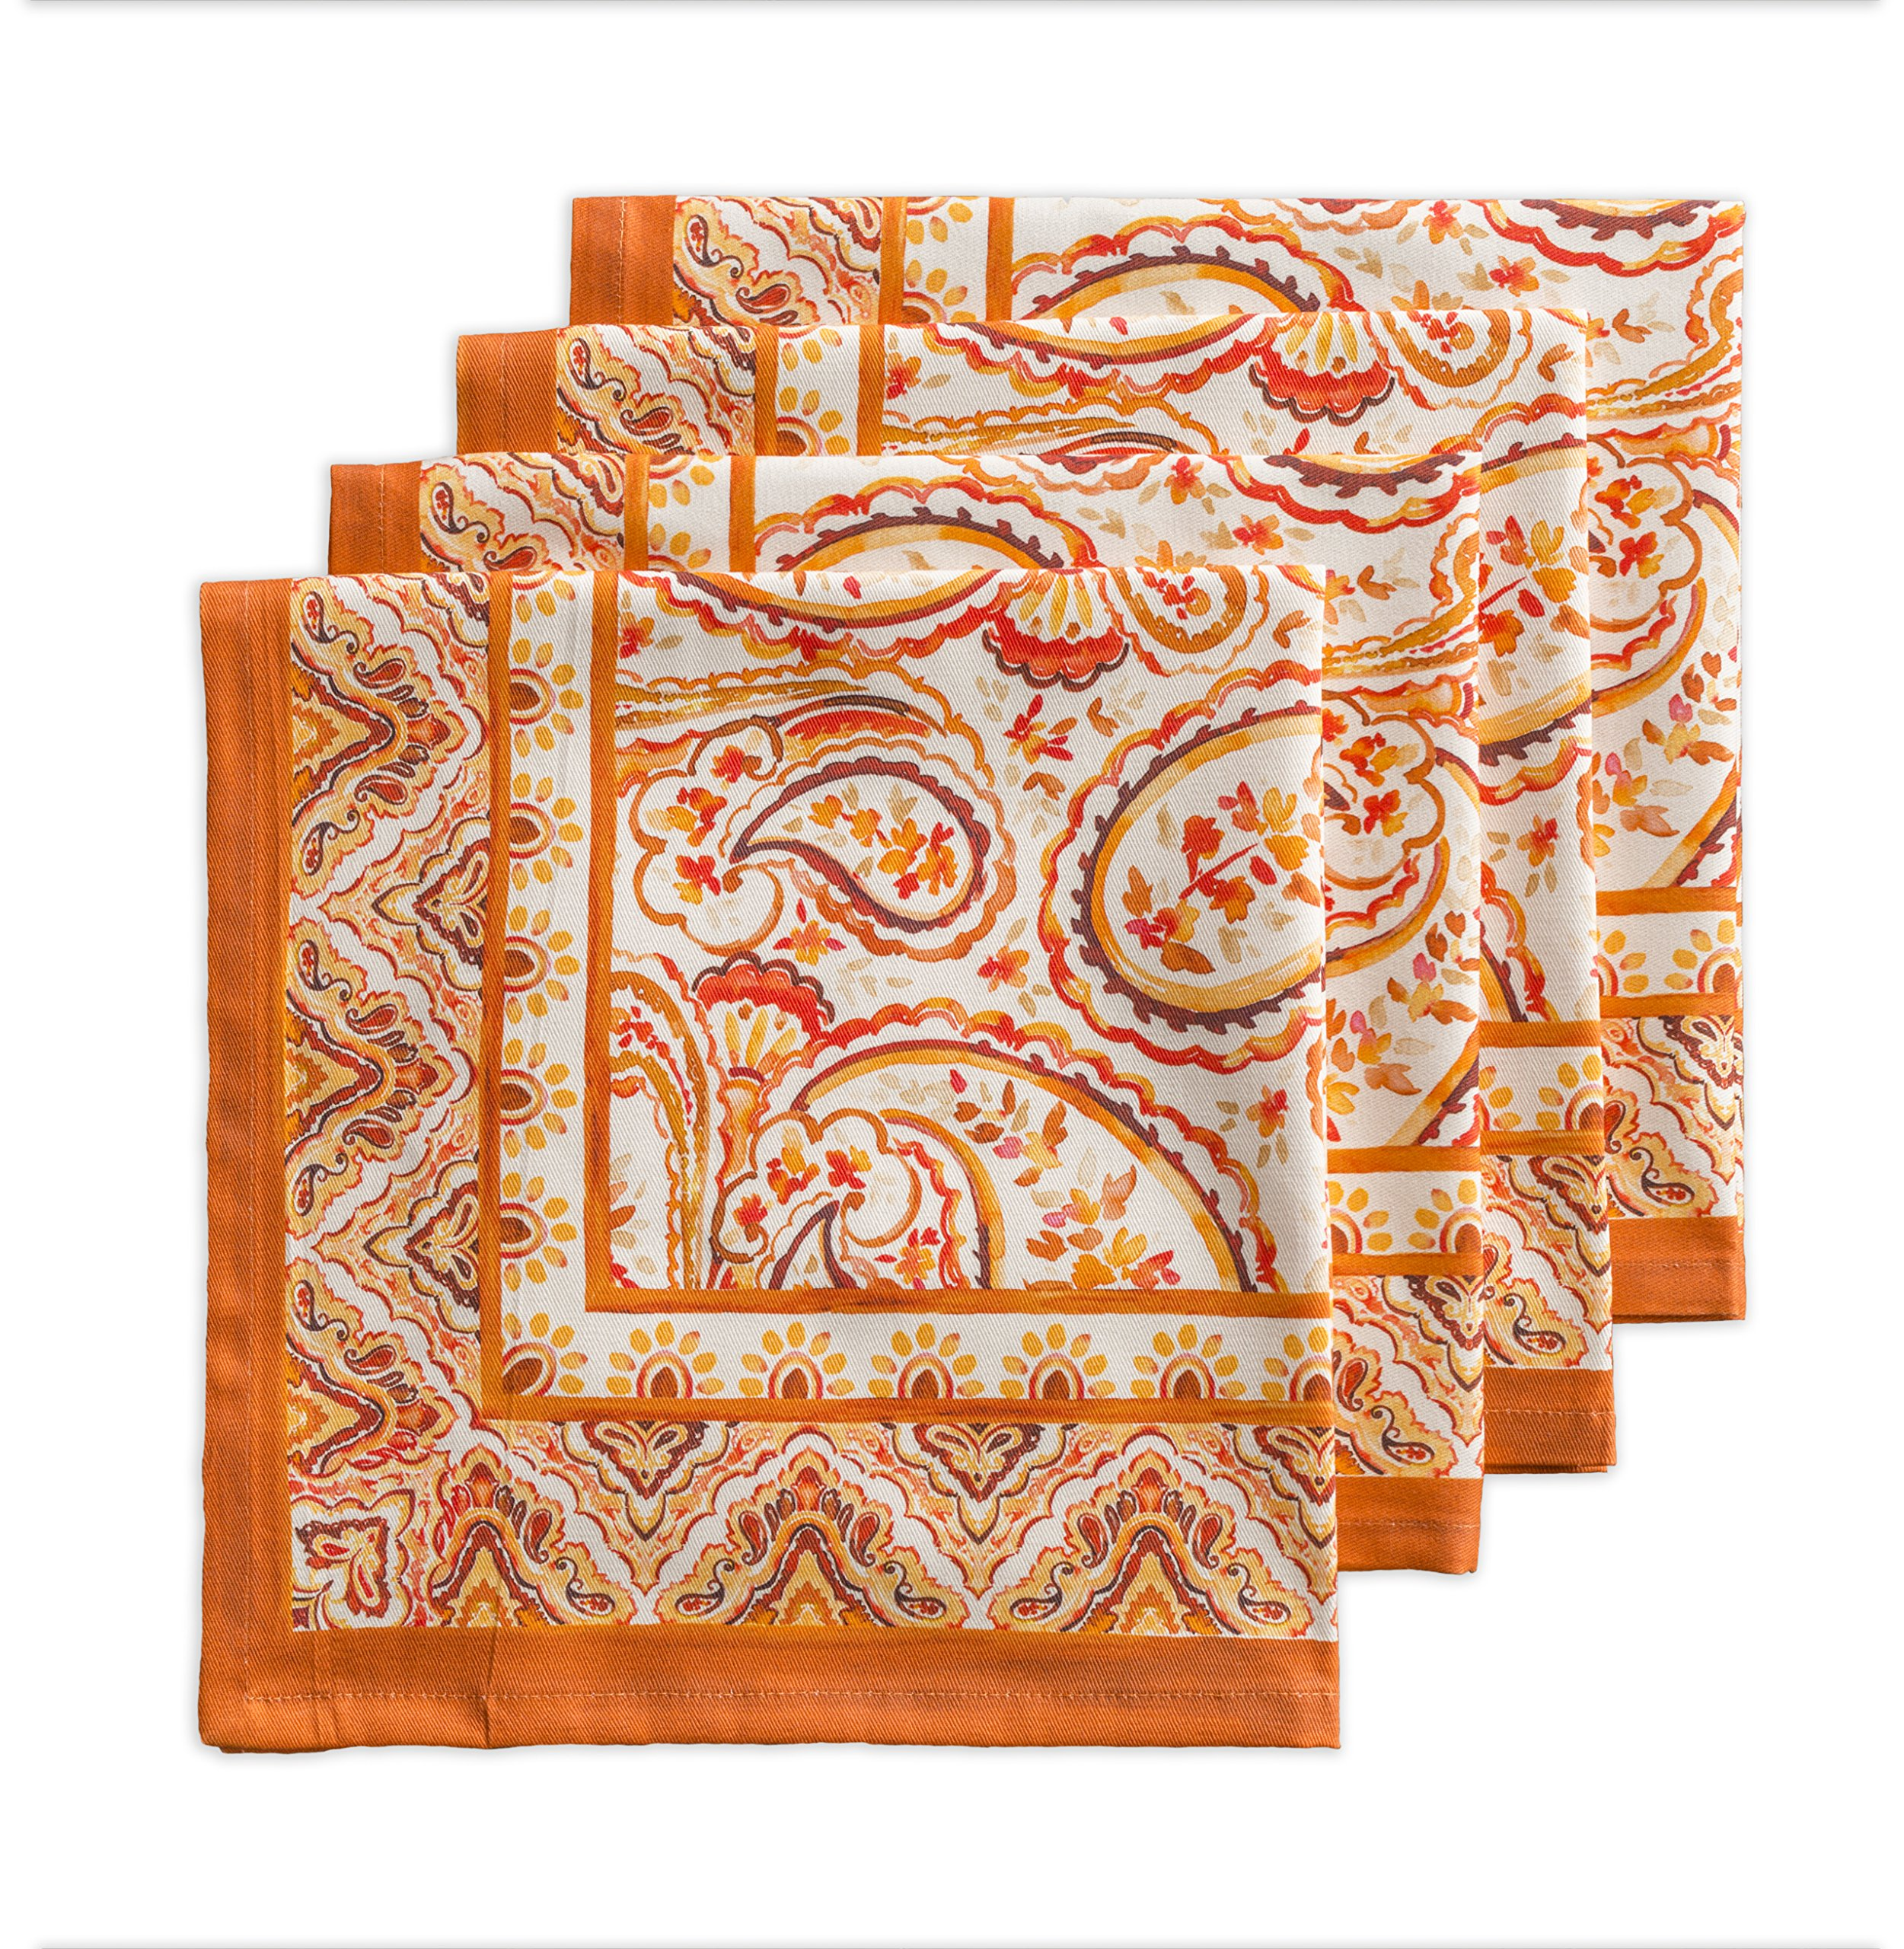 Maison d' Hermine Palatial Paisley 100% Cotton Set of 4 Napkins 20 - Inch by 20 - Inch.